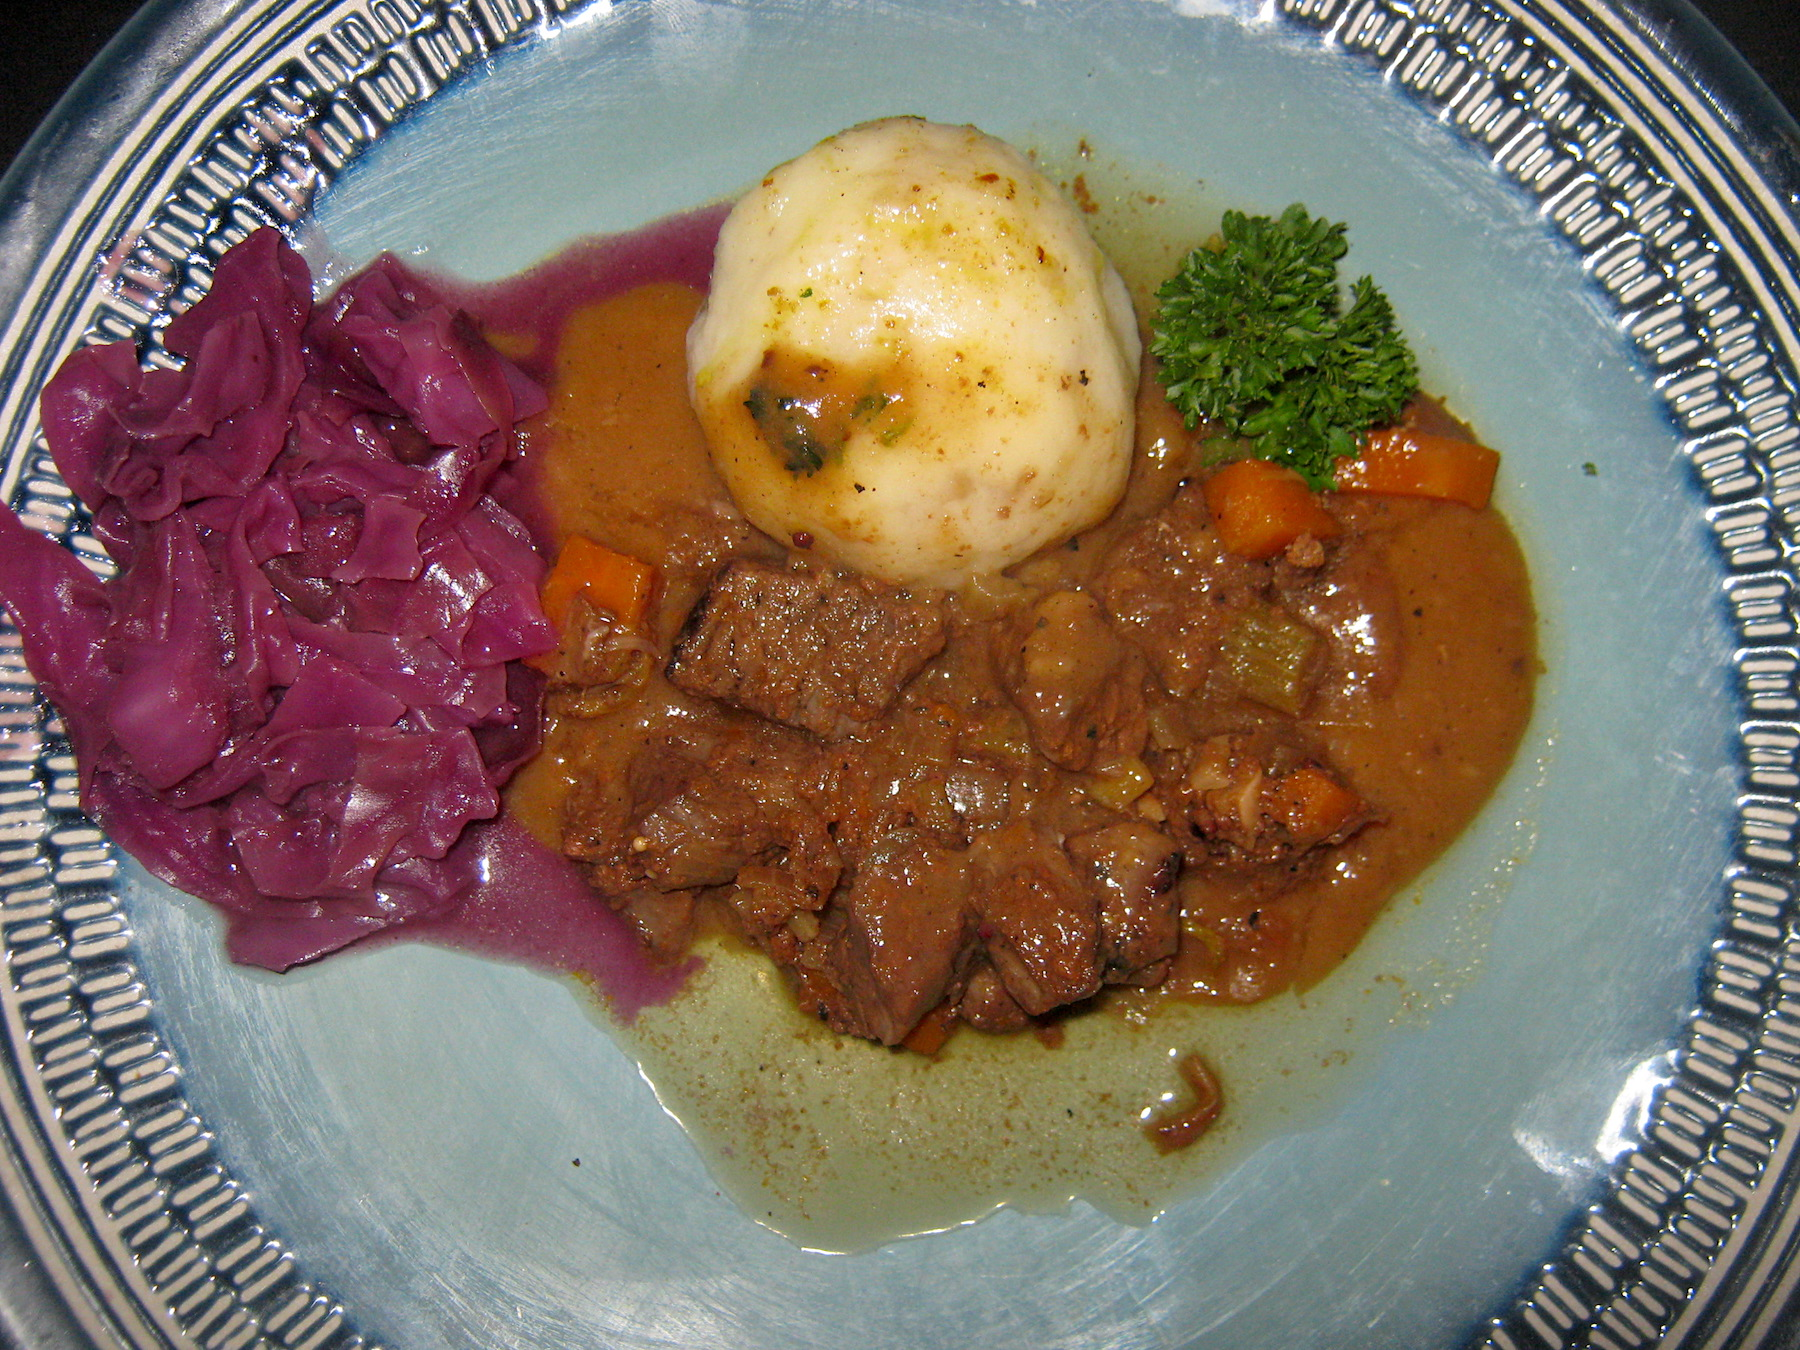 Sauerbraten Style - Marinated Beef with Potato Dumplings and Red Cabbage